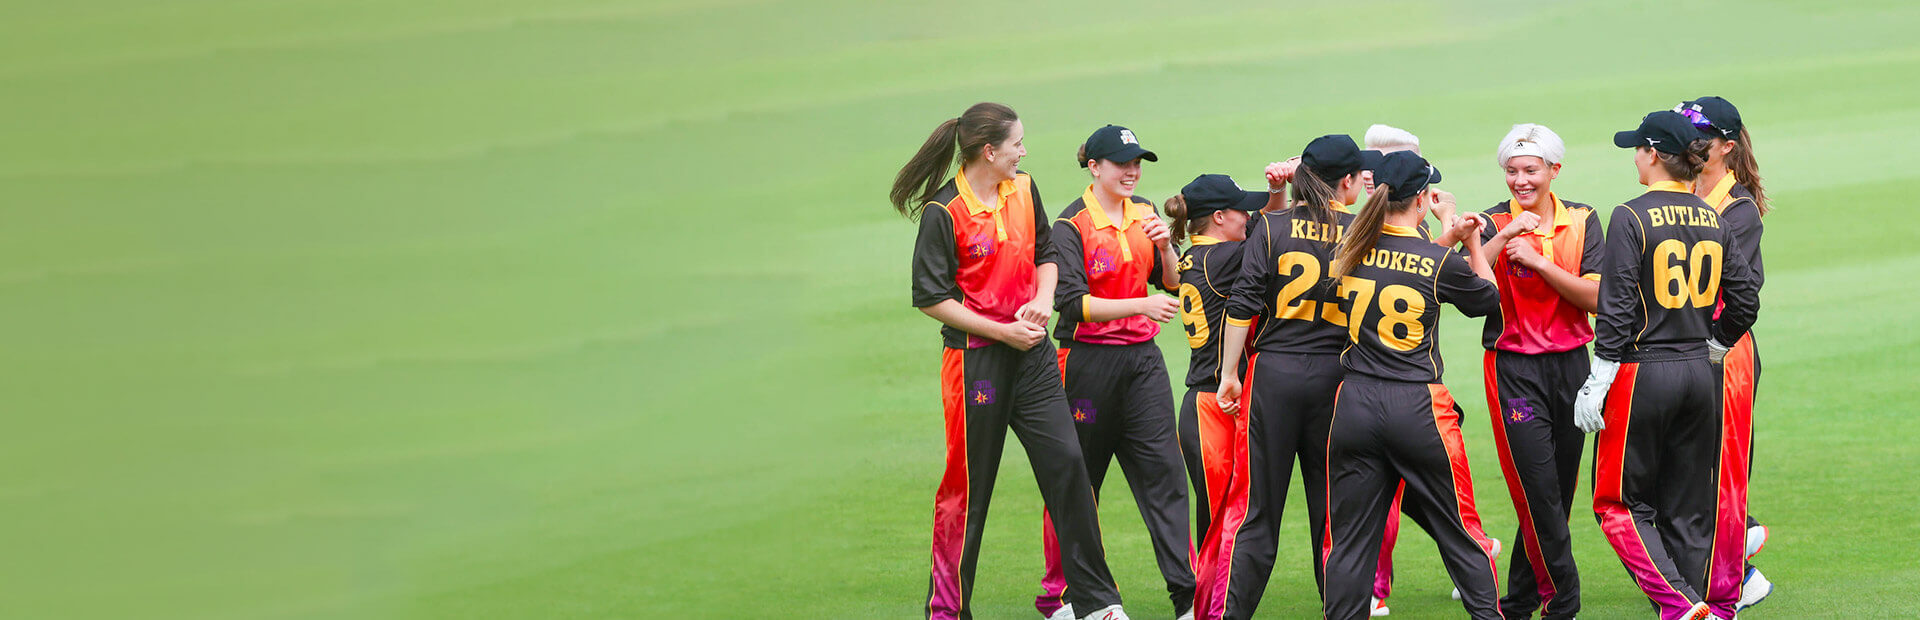 Sparks announce free online umpiring course for women and girls